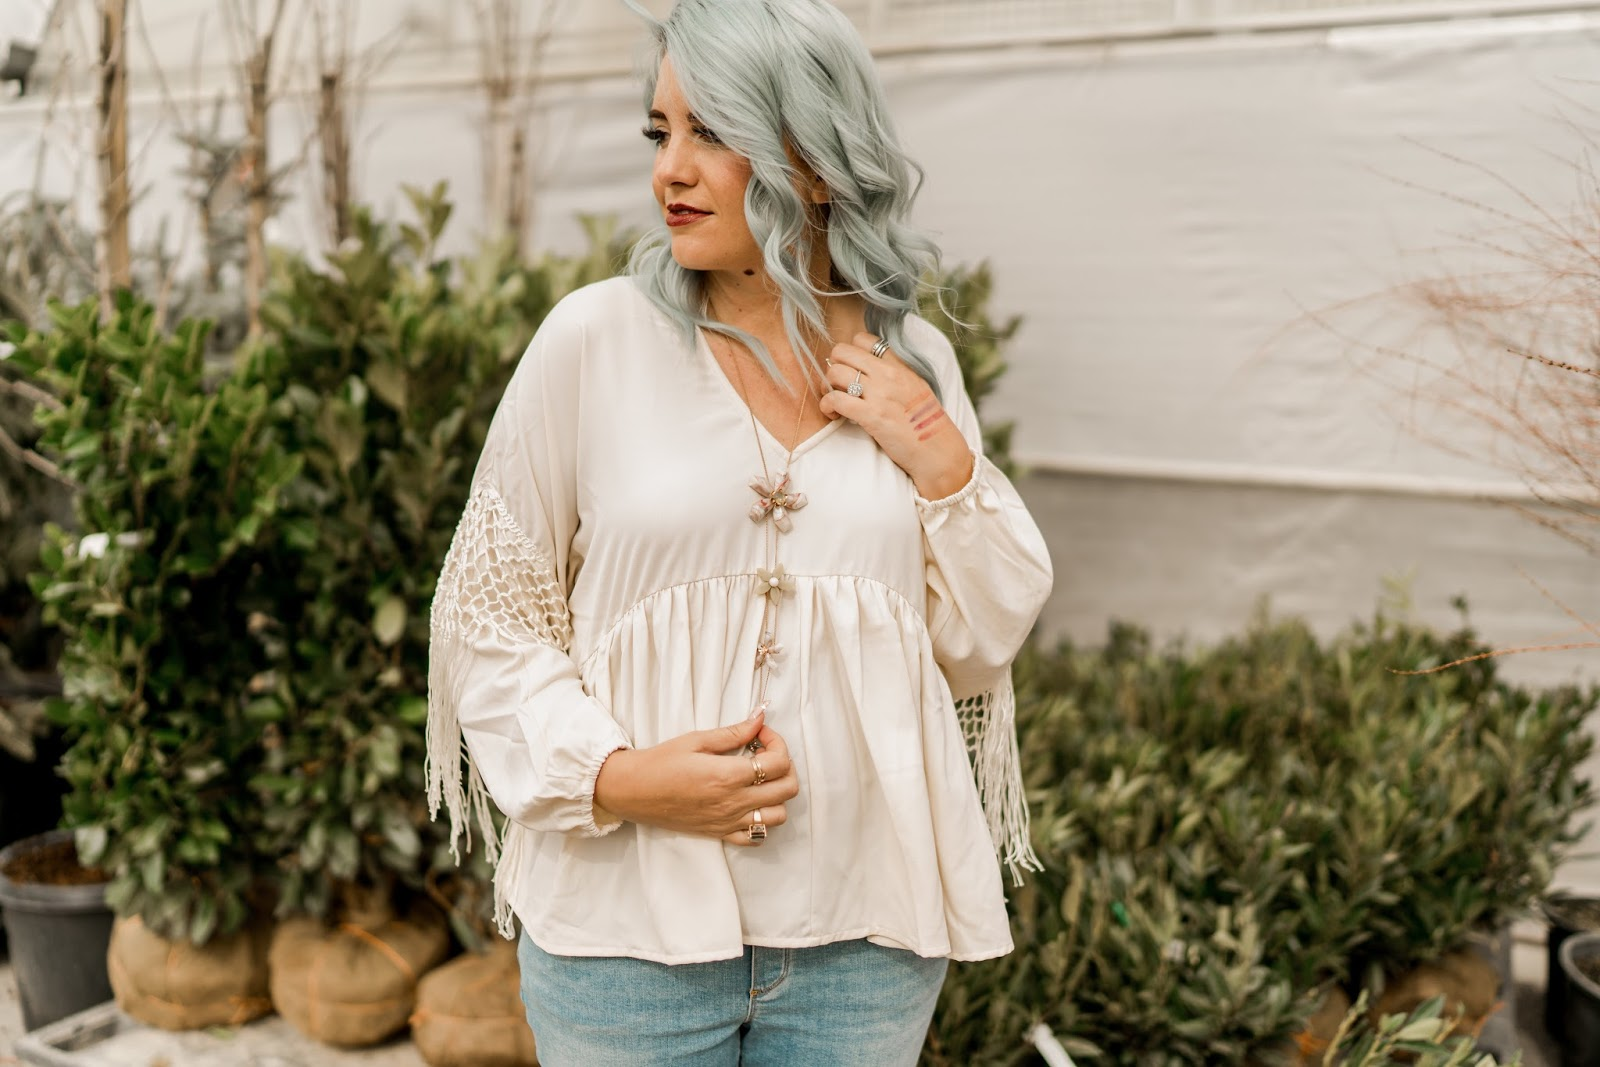 Blue Hair, ASOS Maternity, Fashion Blogger